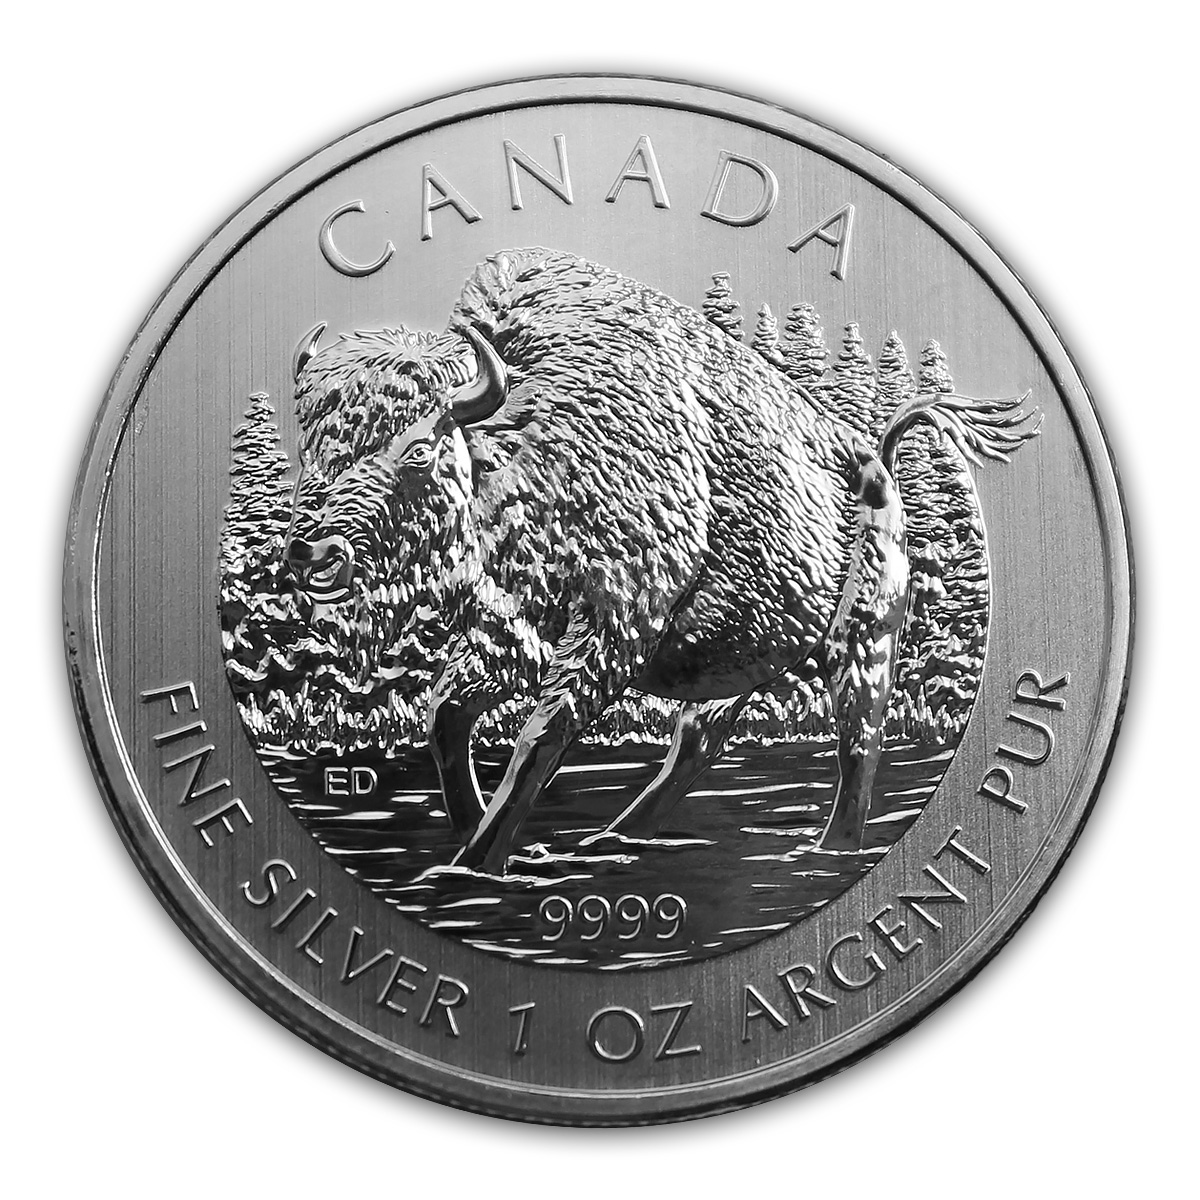 Canadian 1oz Silver Bison Coin Silver Bullion Coins